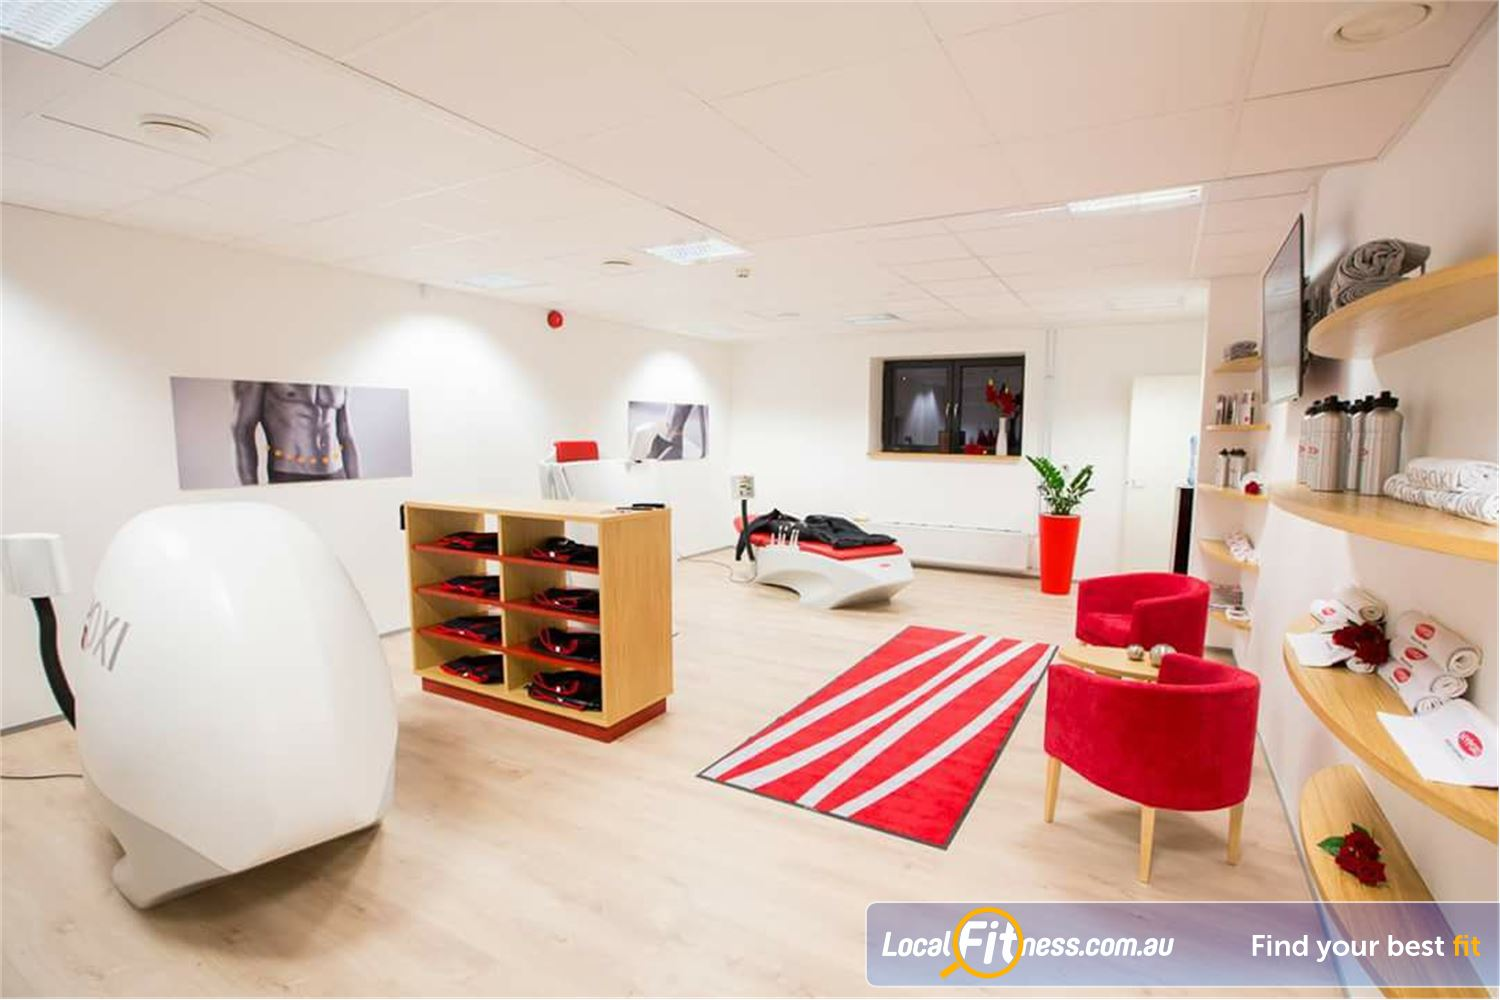 HYPOXI Weight Loss Jindalee All it takes is 30 minutes of low-impact exercise in our Jindalee weight-loss studio.